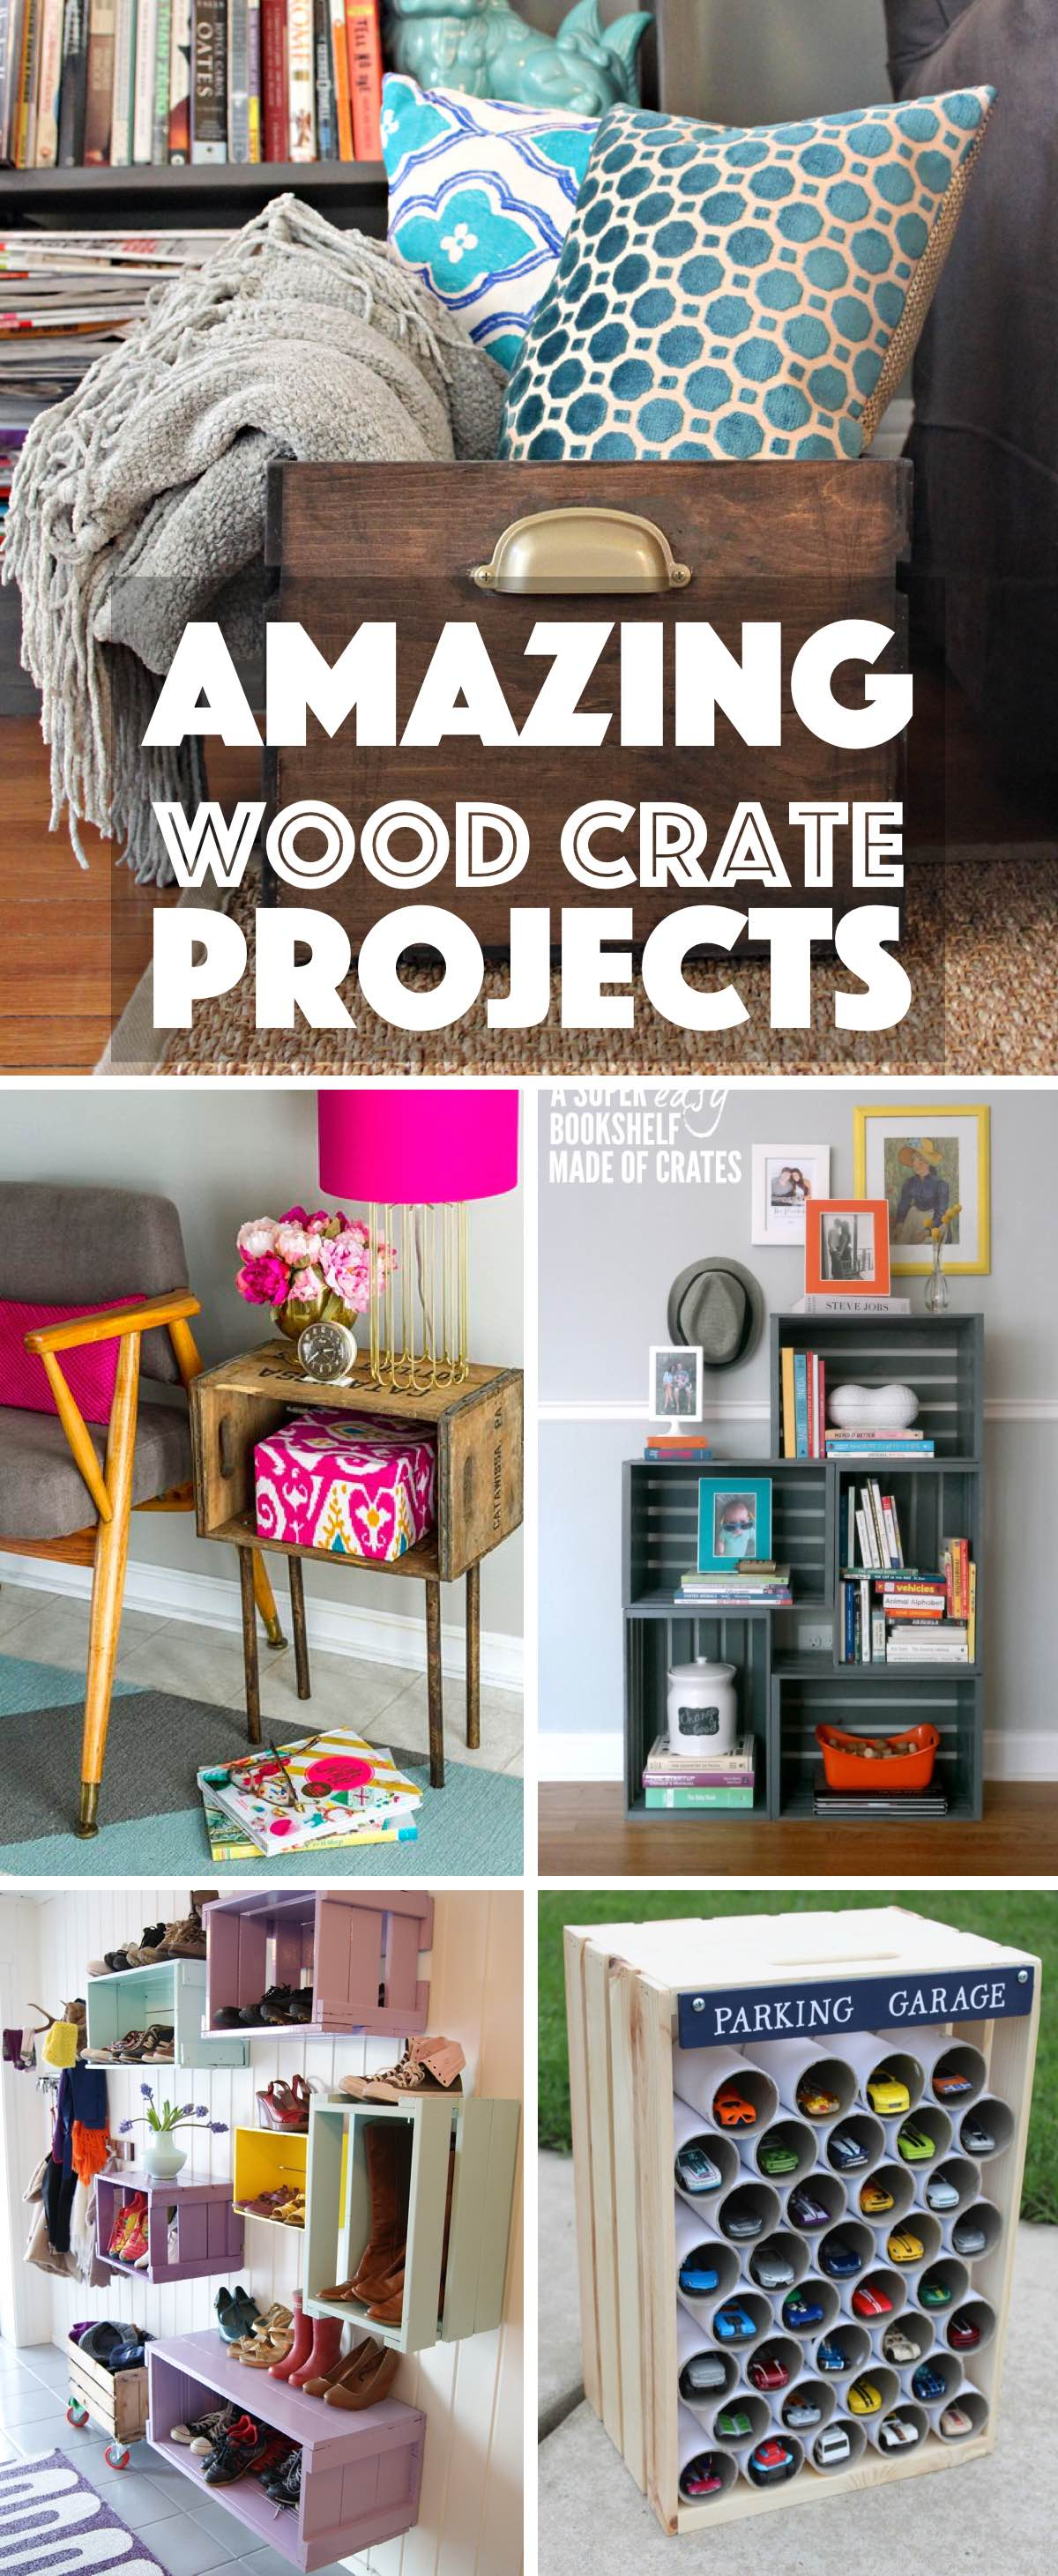 Amazing Wood Crate Projects That Range From Decor To Storage